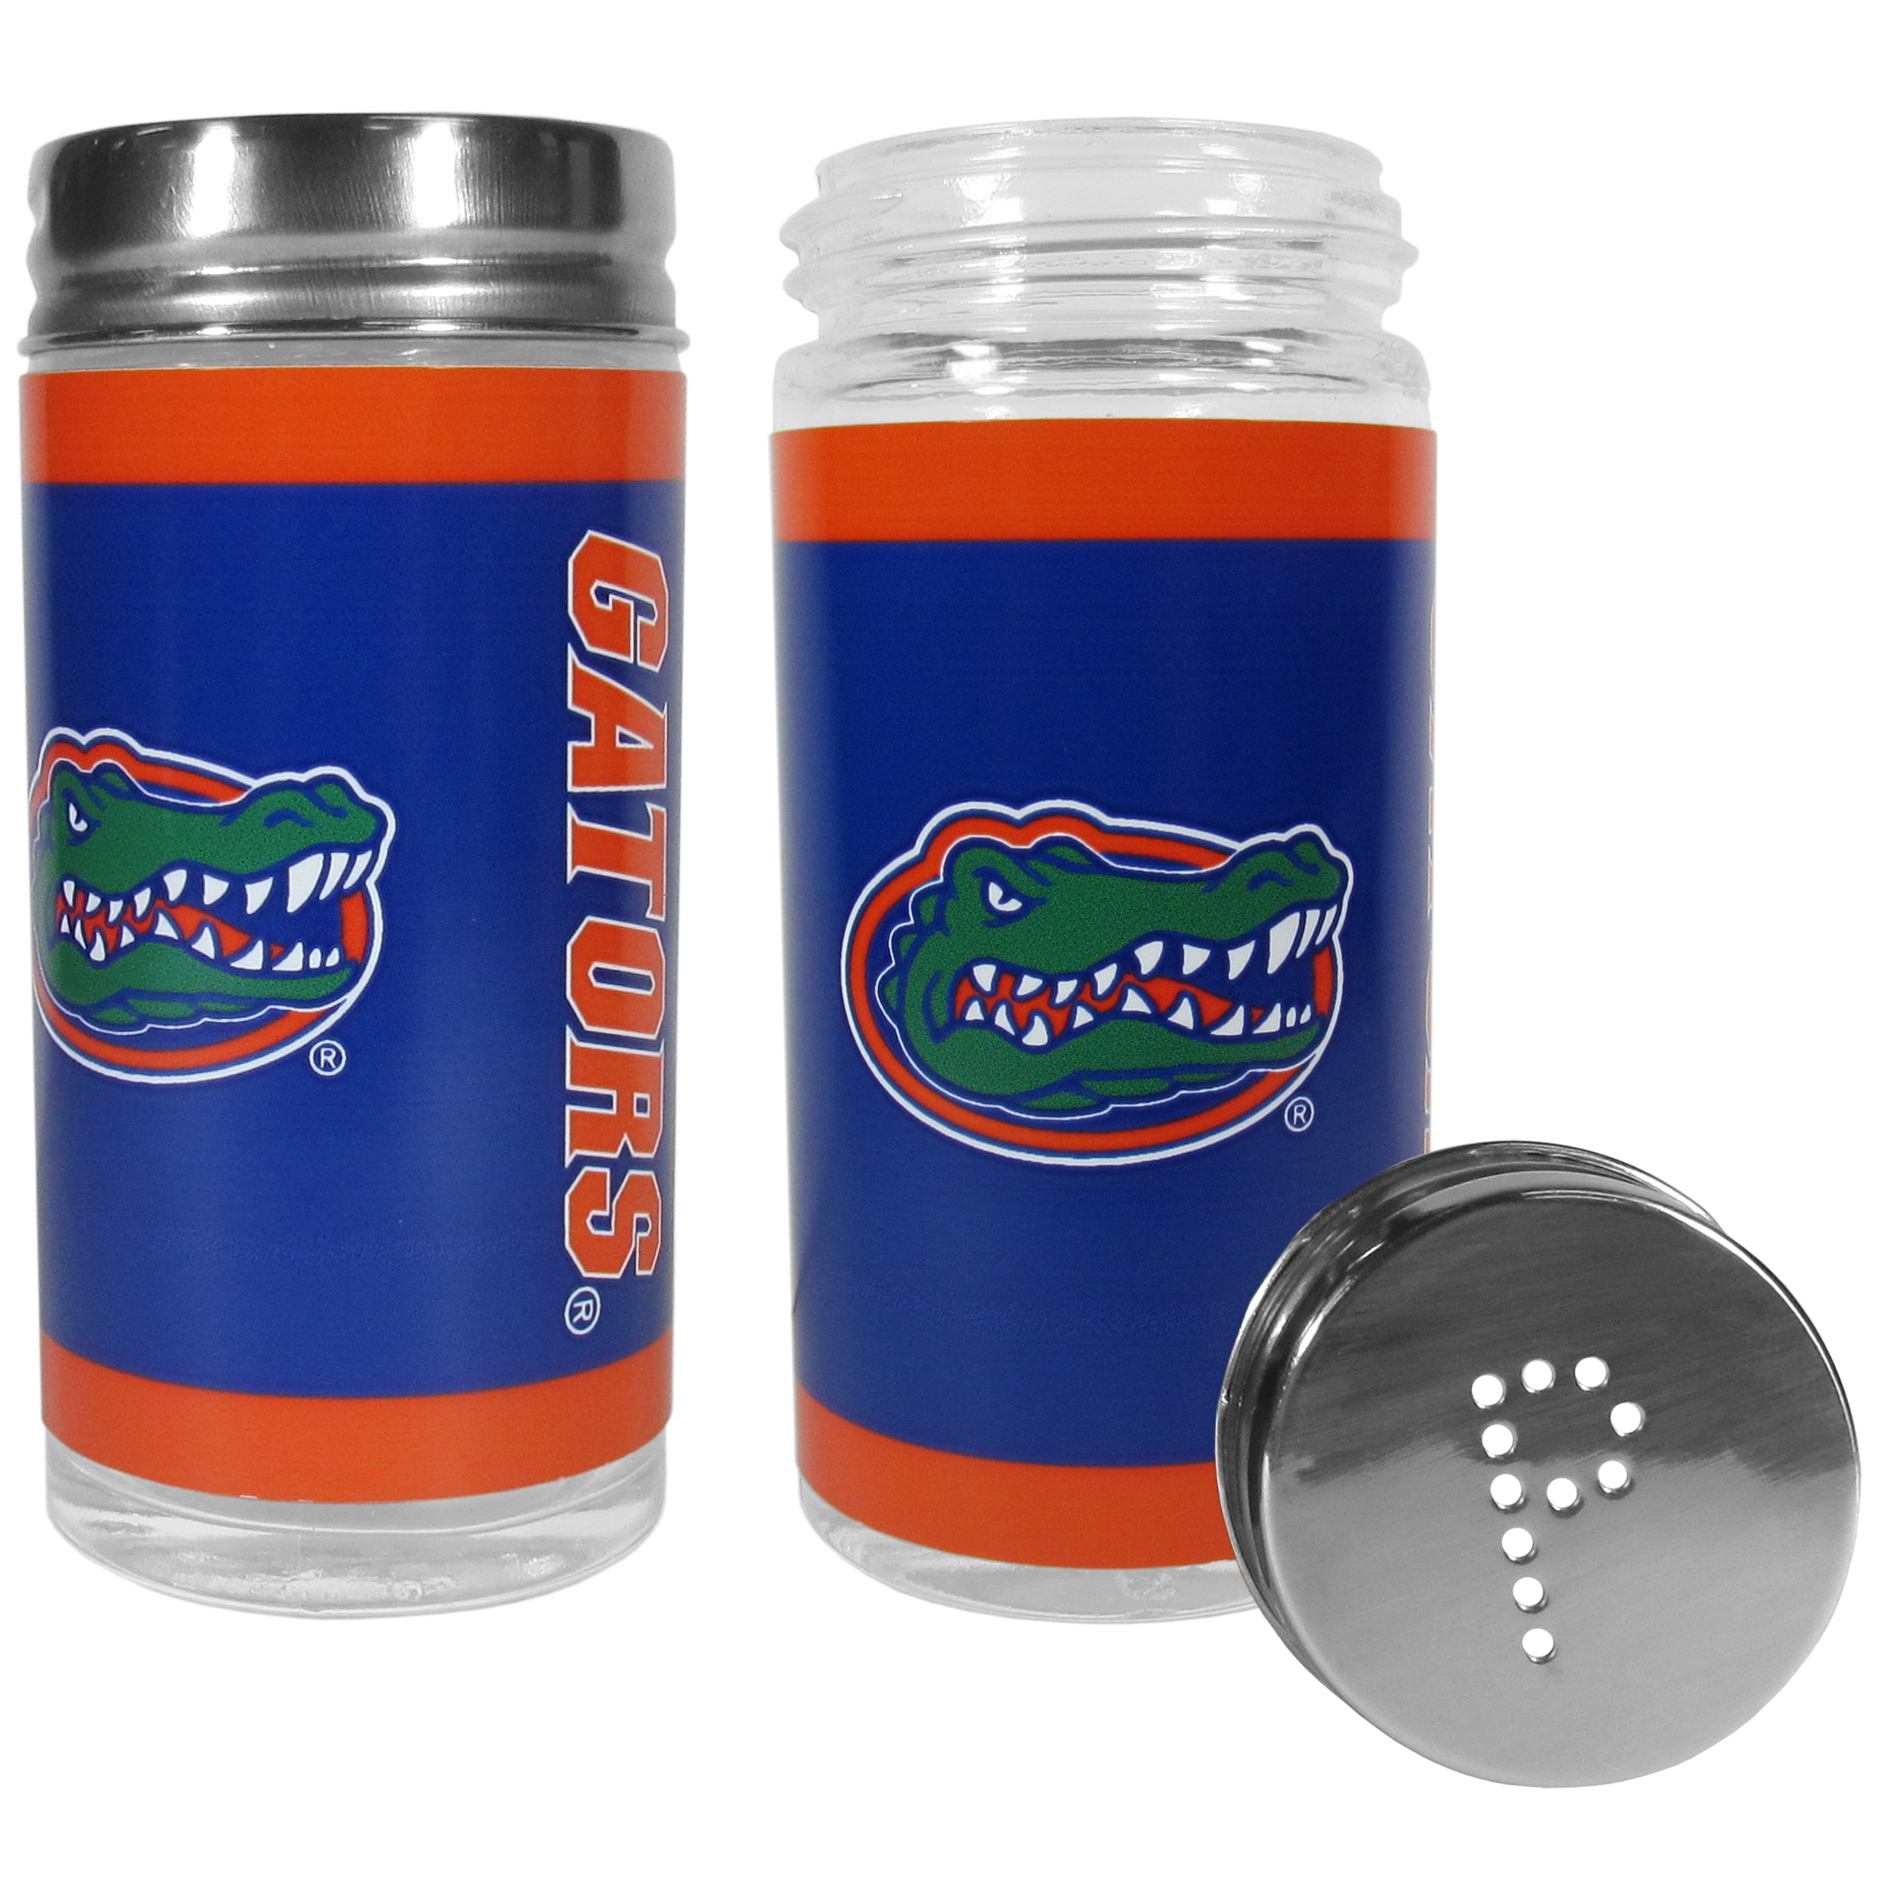 Florida Gators Tailgater Salt and Pepper Shakers - No tailgate party is complete without your Florida Gators salt & pepper shakers featuring bright team graphics. The glass shakers are 3.75 inches tall and the screw top lids have holes that spell out P and S. These team shakers are a great grill accessory whether you are barbecuing on the patio, picnicing or having a game day party.